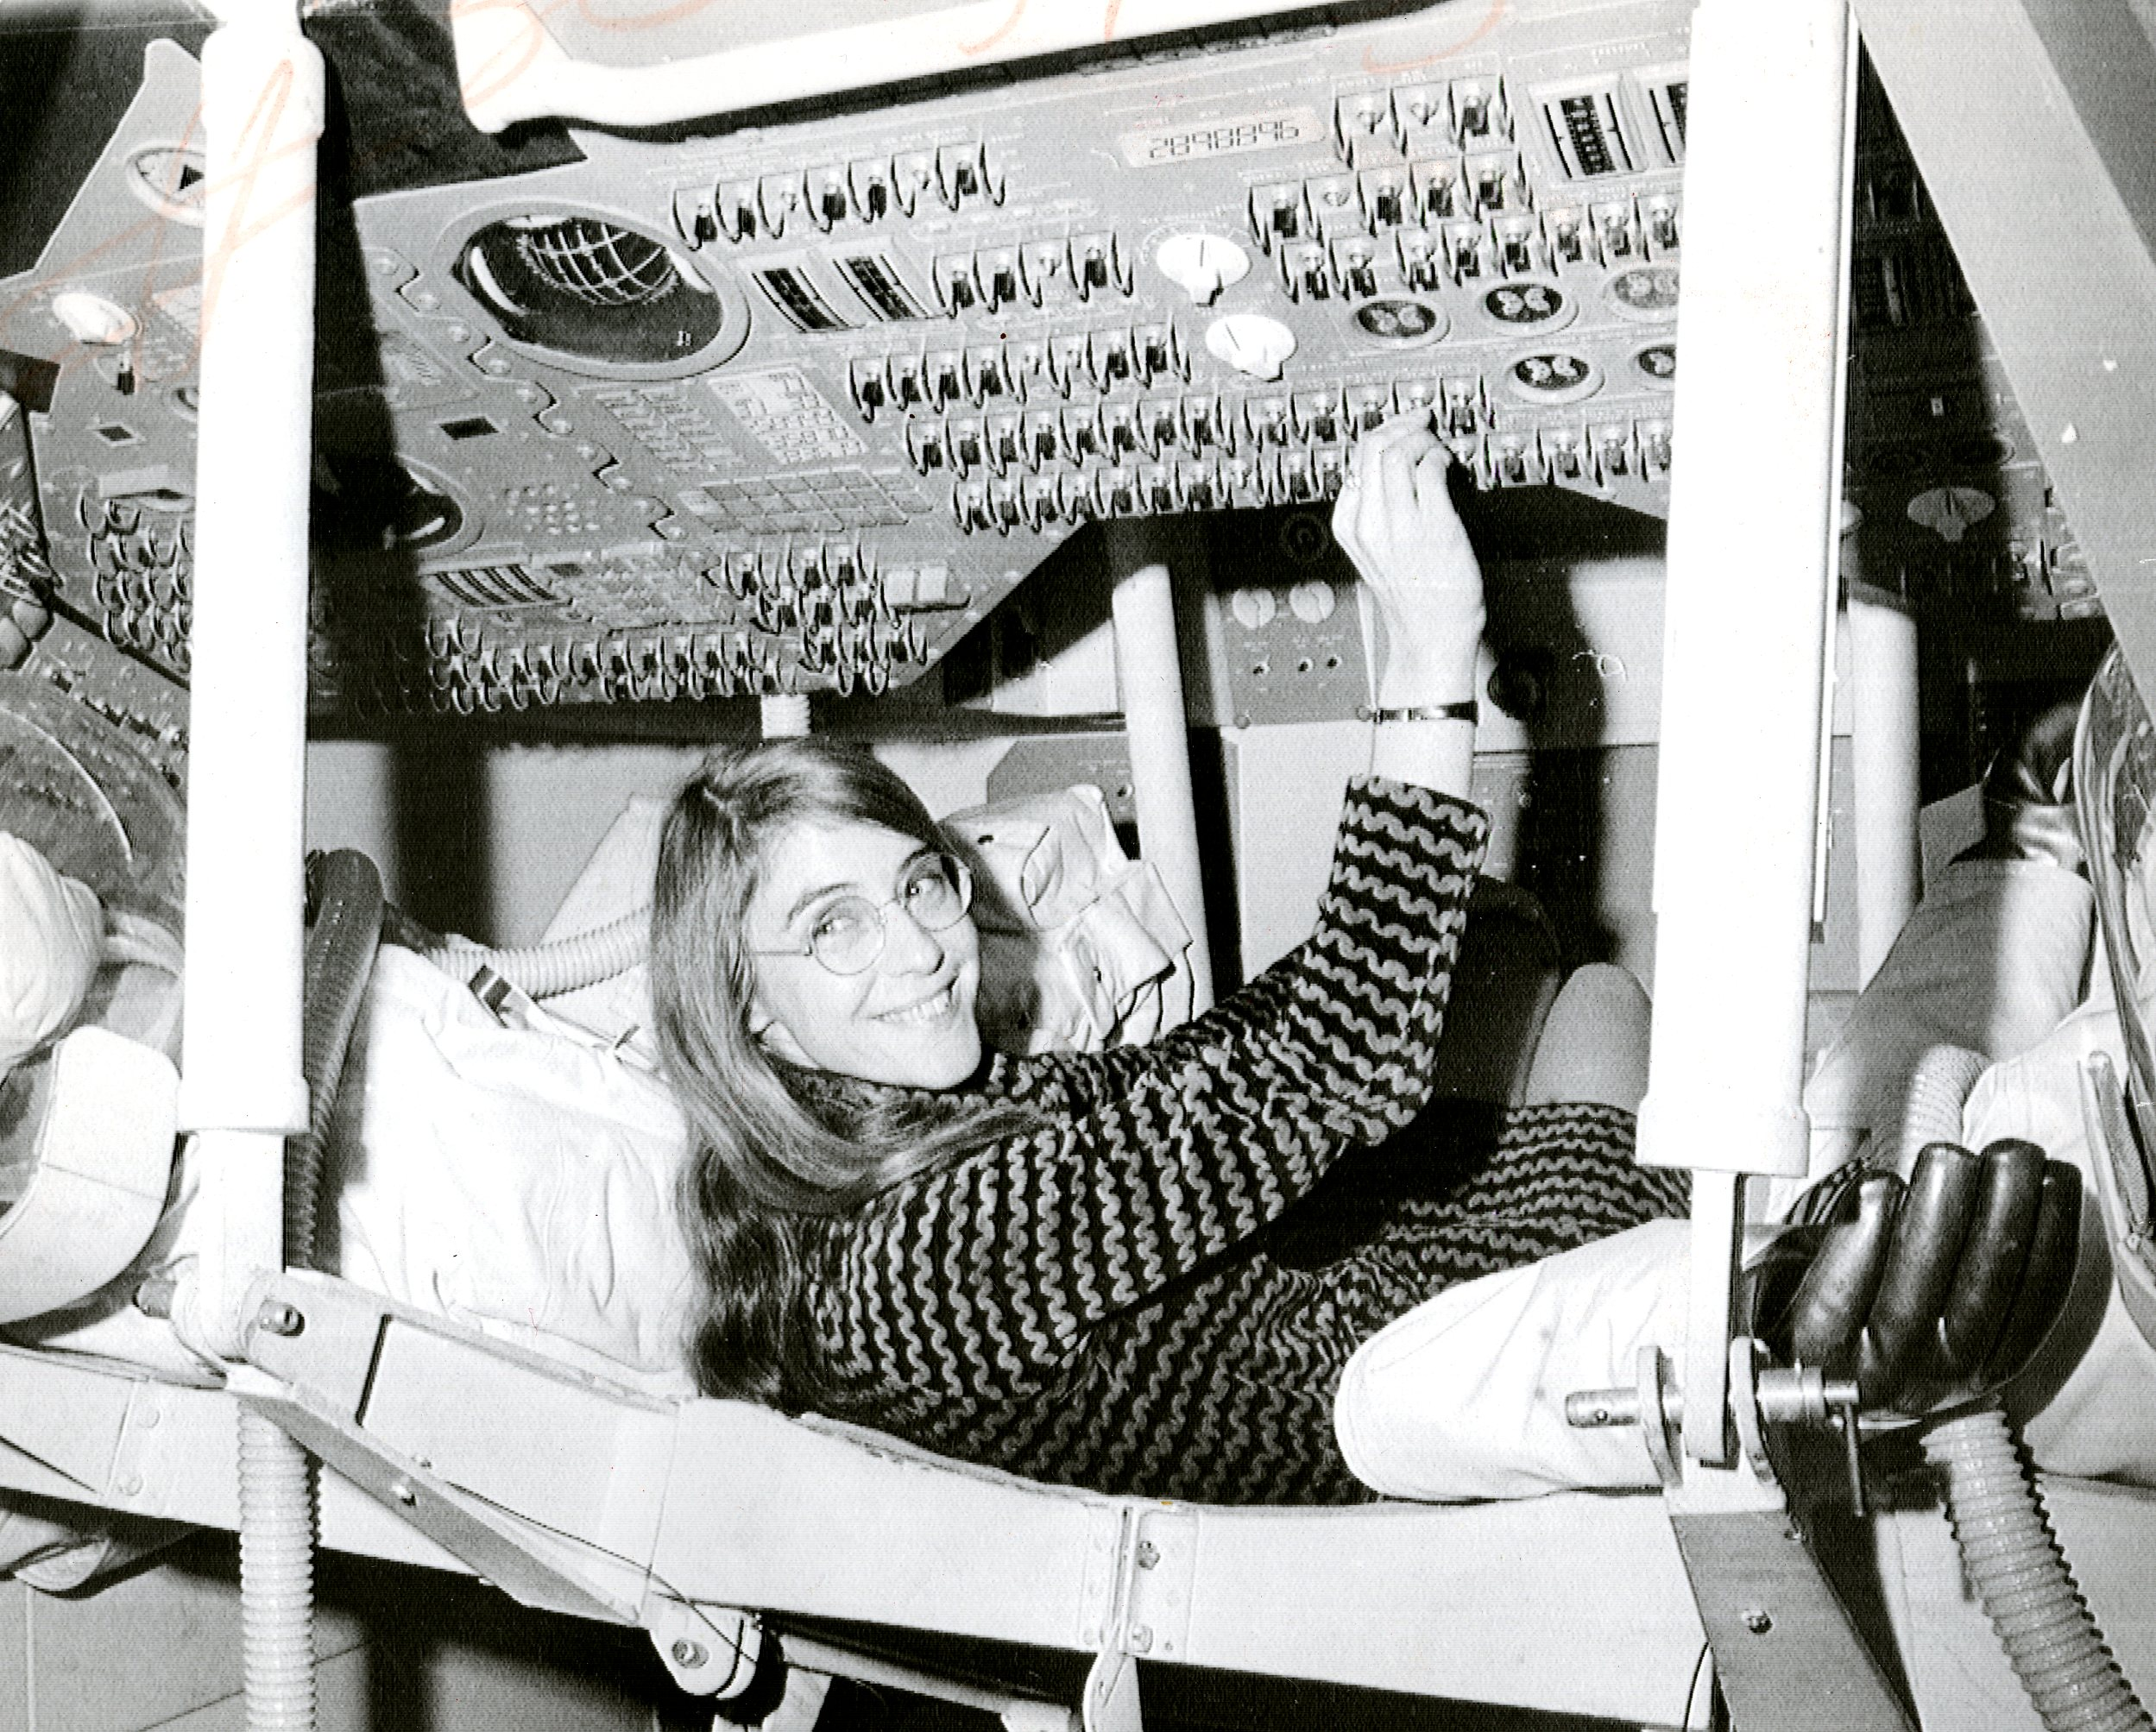 Margaret Hamilton, lead Apollo flight software engineer, in the Apollo Command Module.